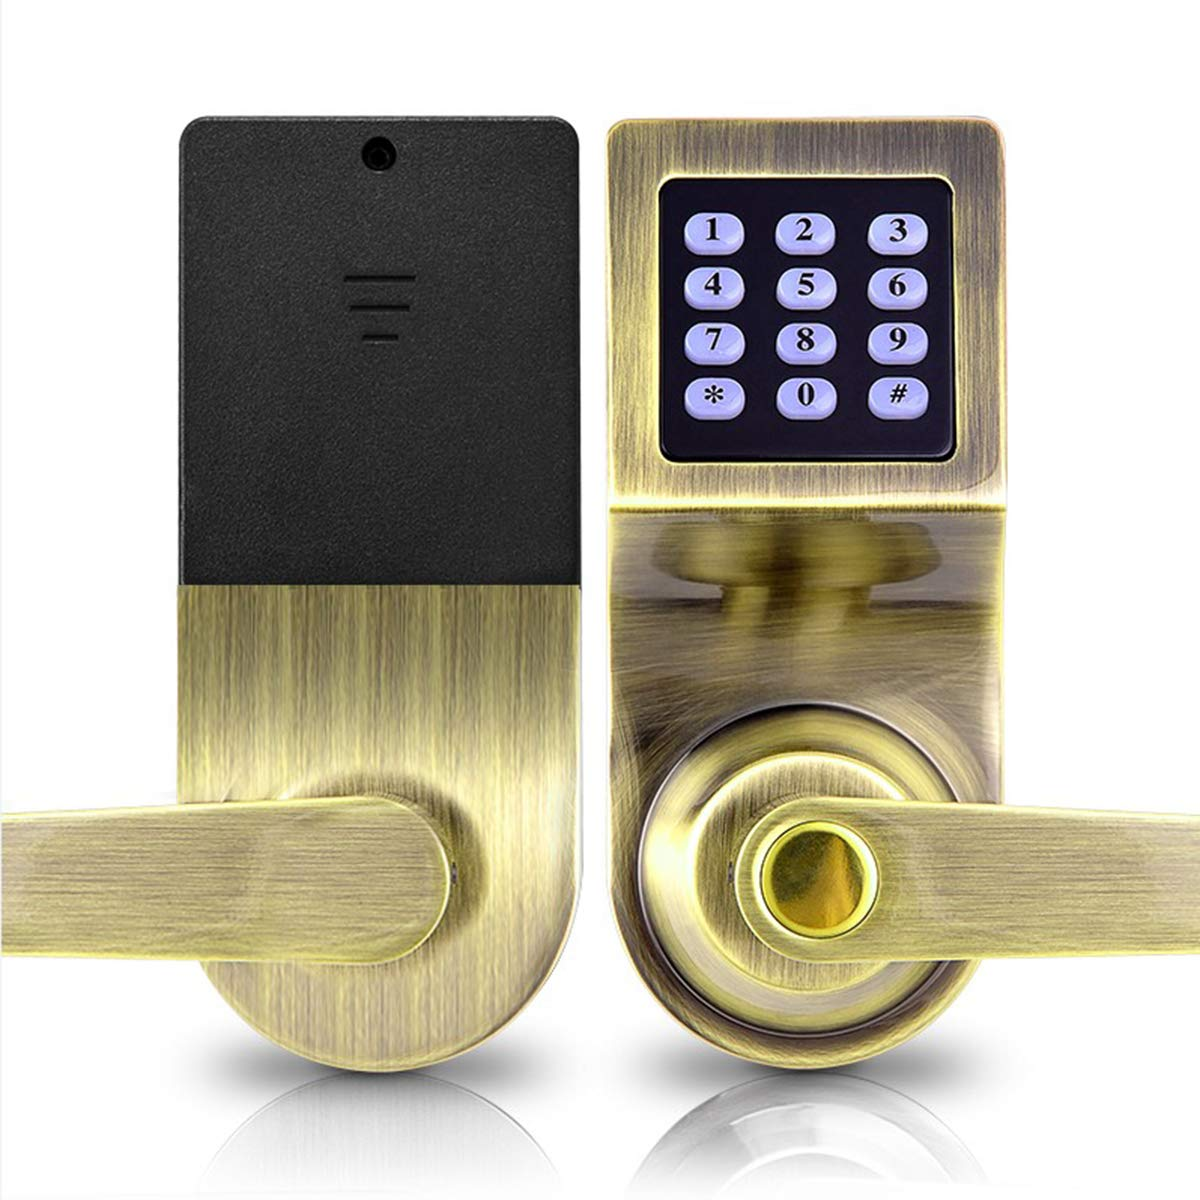 Buy SPOTACT Electronic Induction Smart Password Ball Lock Remote Control Door  Lock Office Hotel Apartment Hotel B&B Travel Home Password Card Lock  (Center Column 60mm, Green Patina) Online at Low Prices in